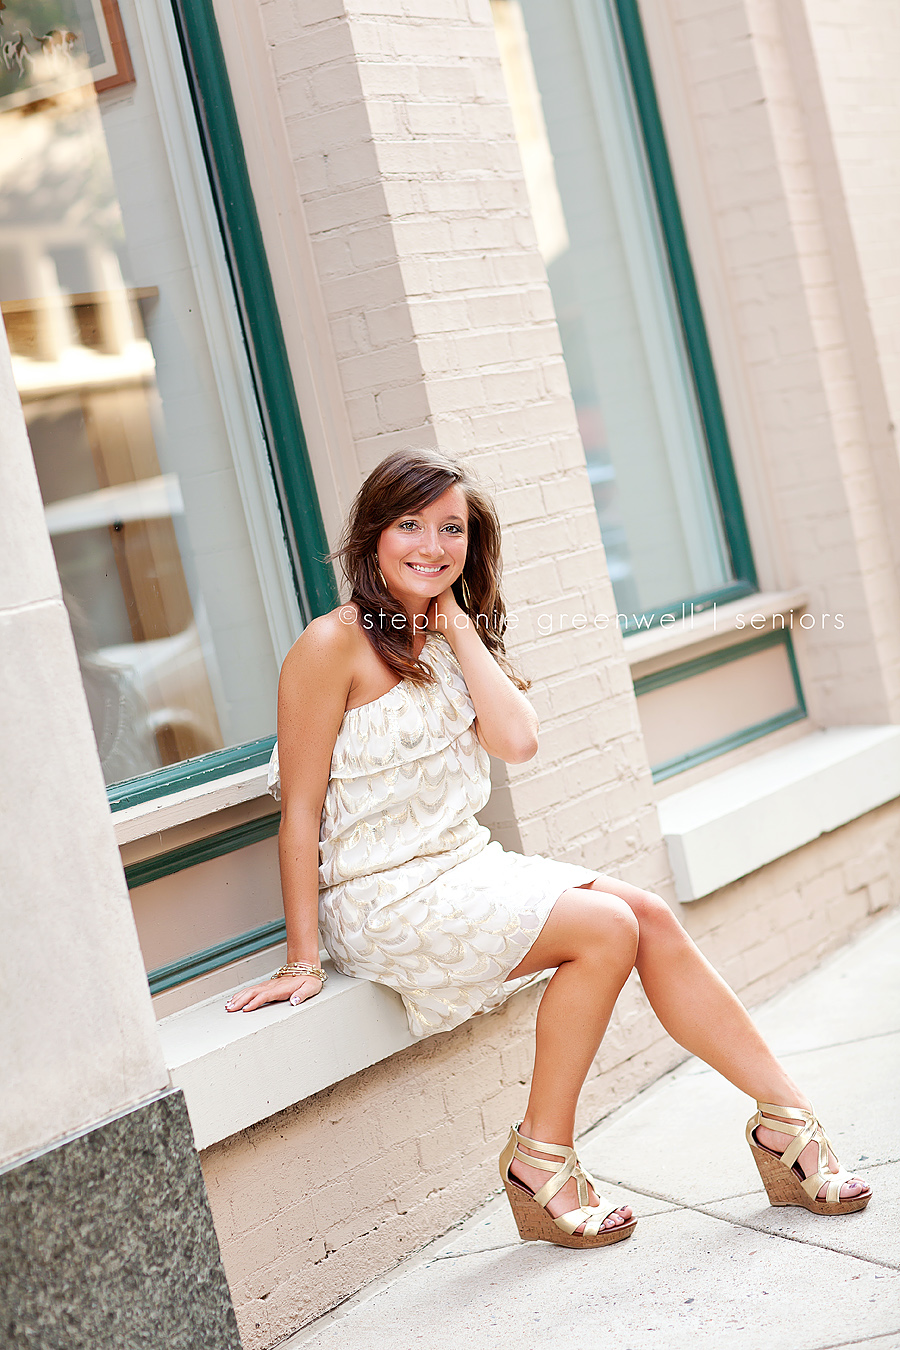 hayti senior personals Our online dating site will help you target potential matches according to location and it covers many of the major cities senior personals .